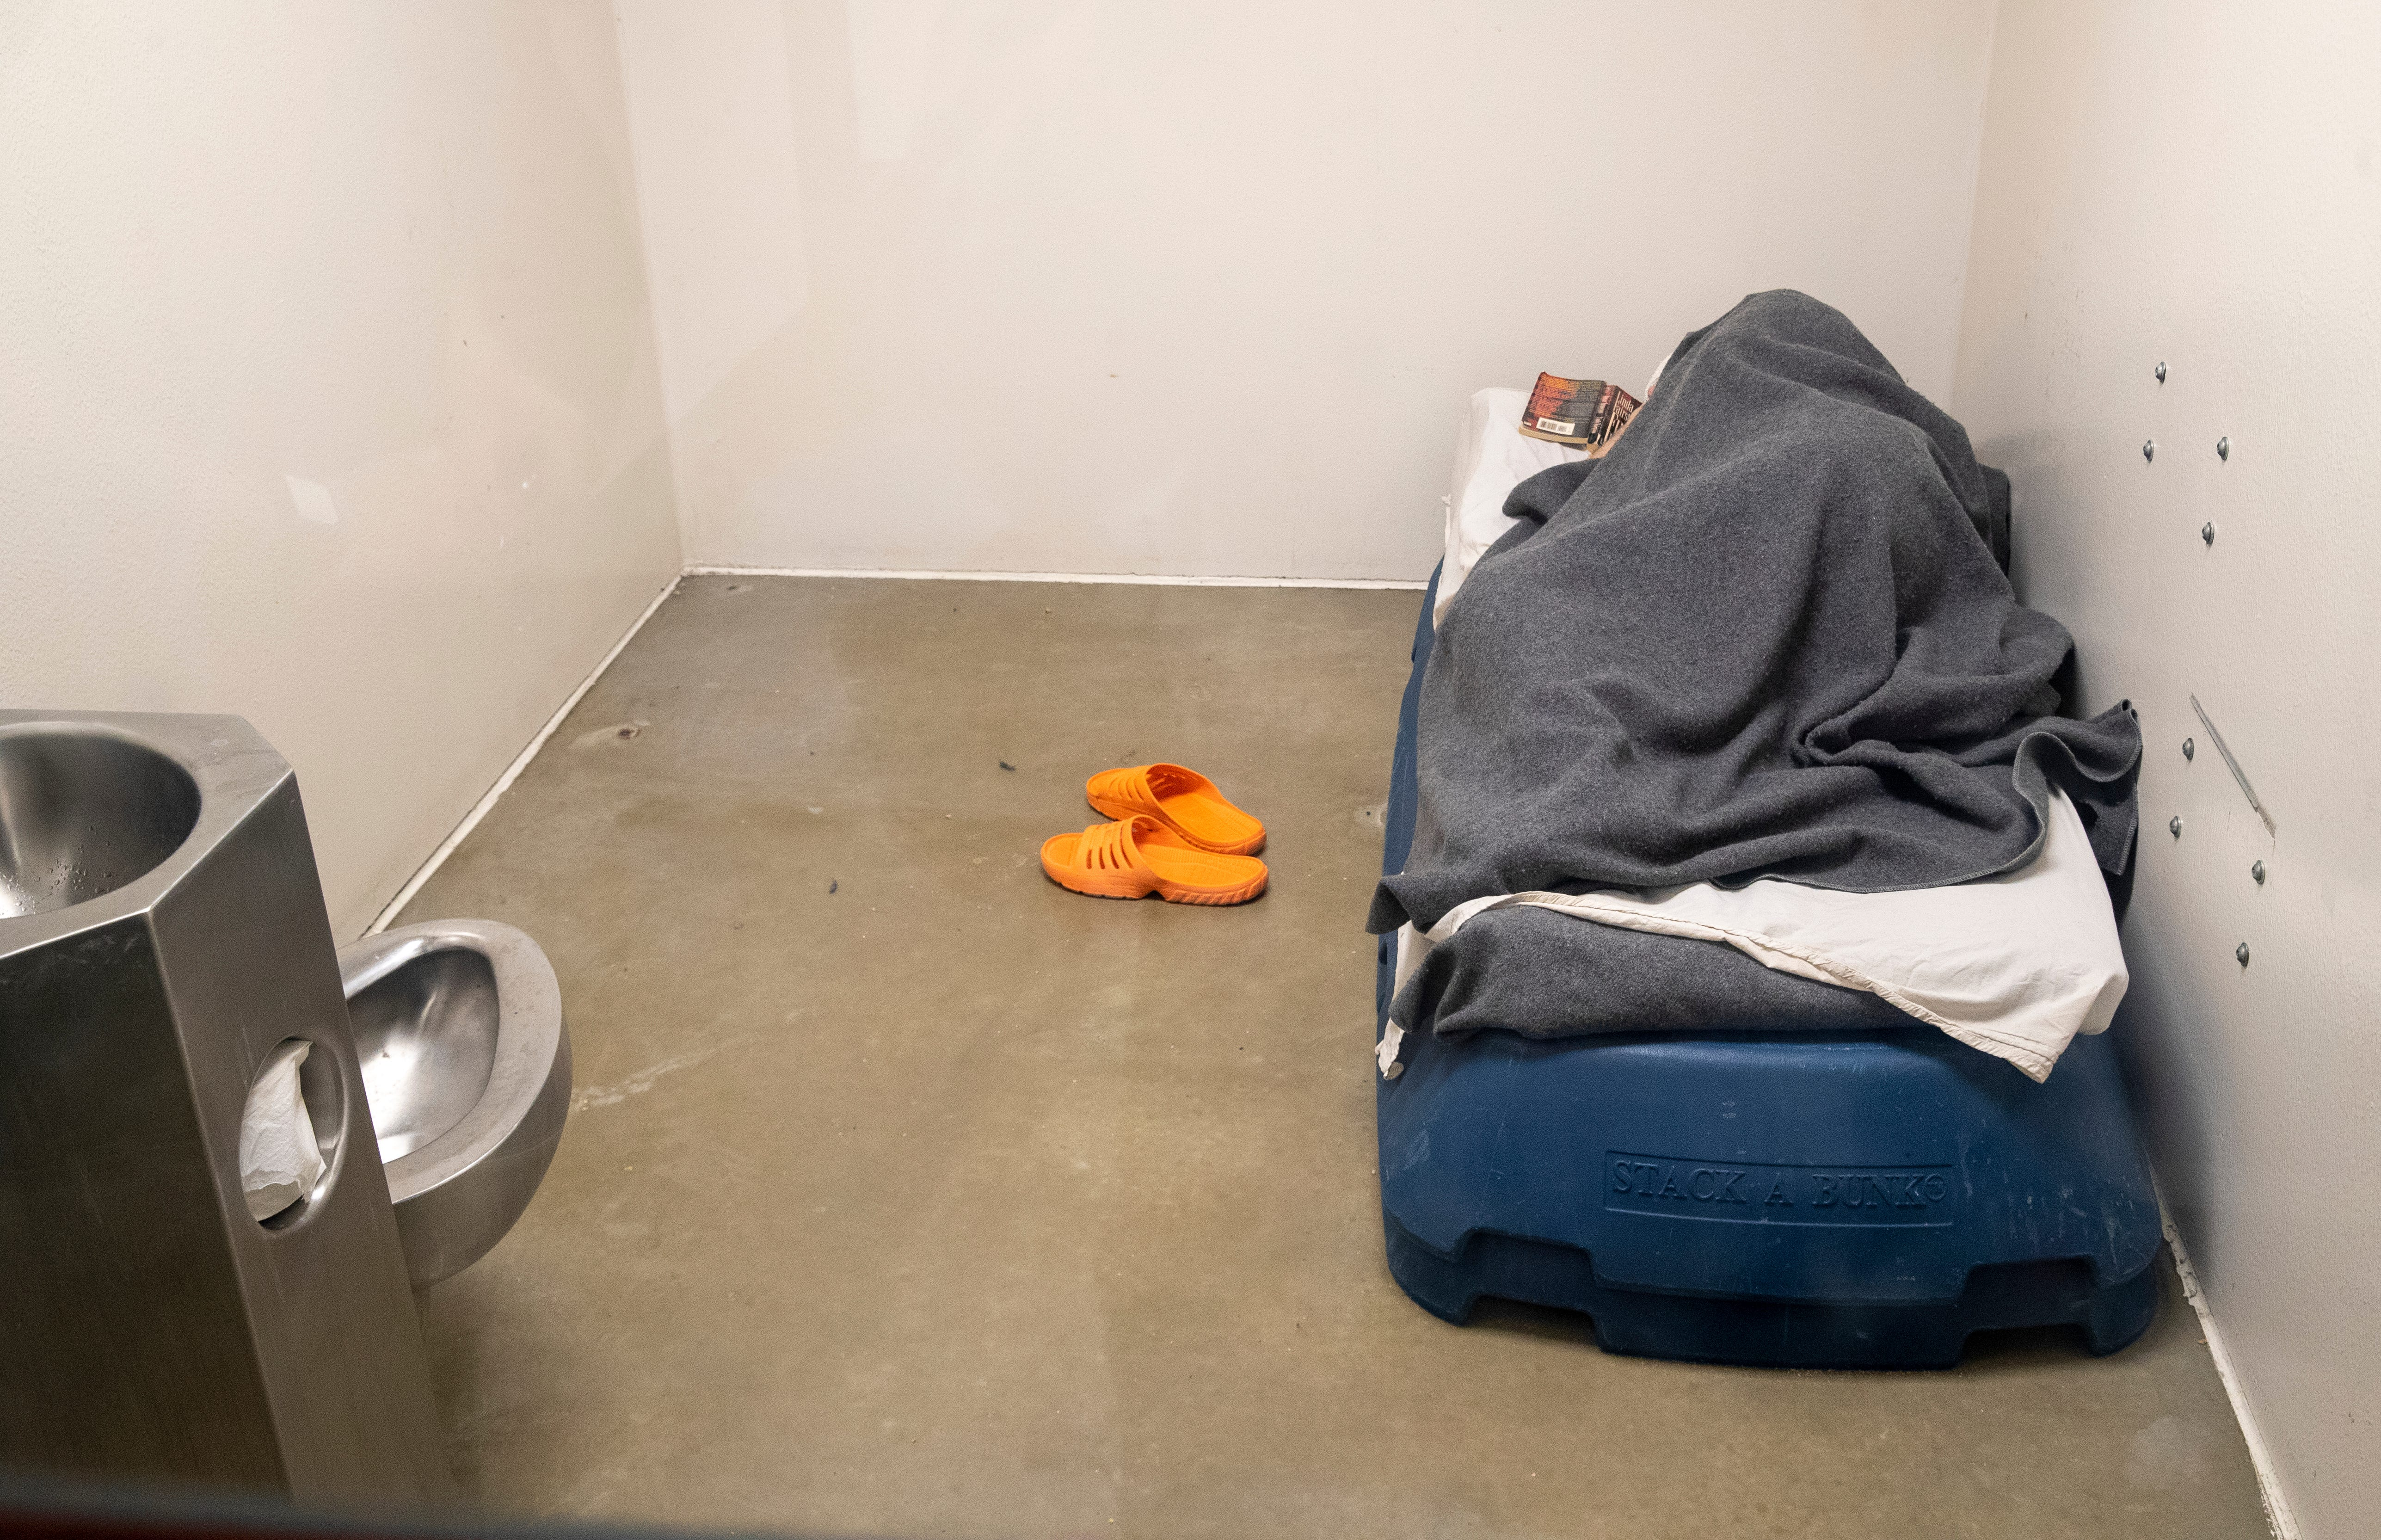 An inmate reads a book in a single cell Wednesday, July 28, 2021, at the Vanderburgh County jail in Evansville, Ind. While it is one of the larger county jails in Indiana, it has only had three deaths — all of natural causes — since 2010.